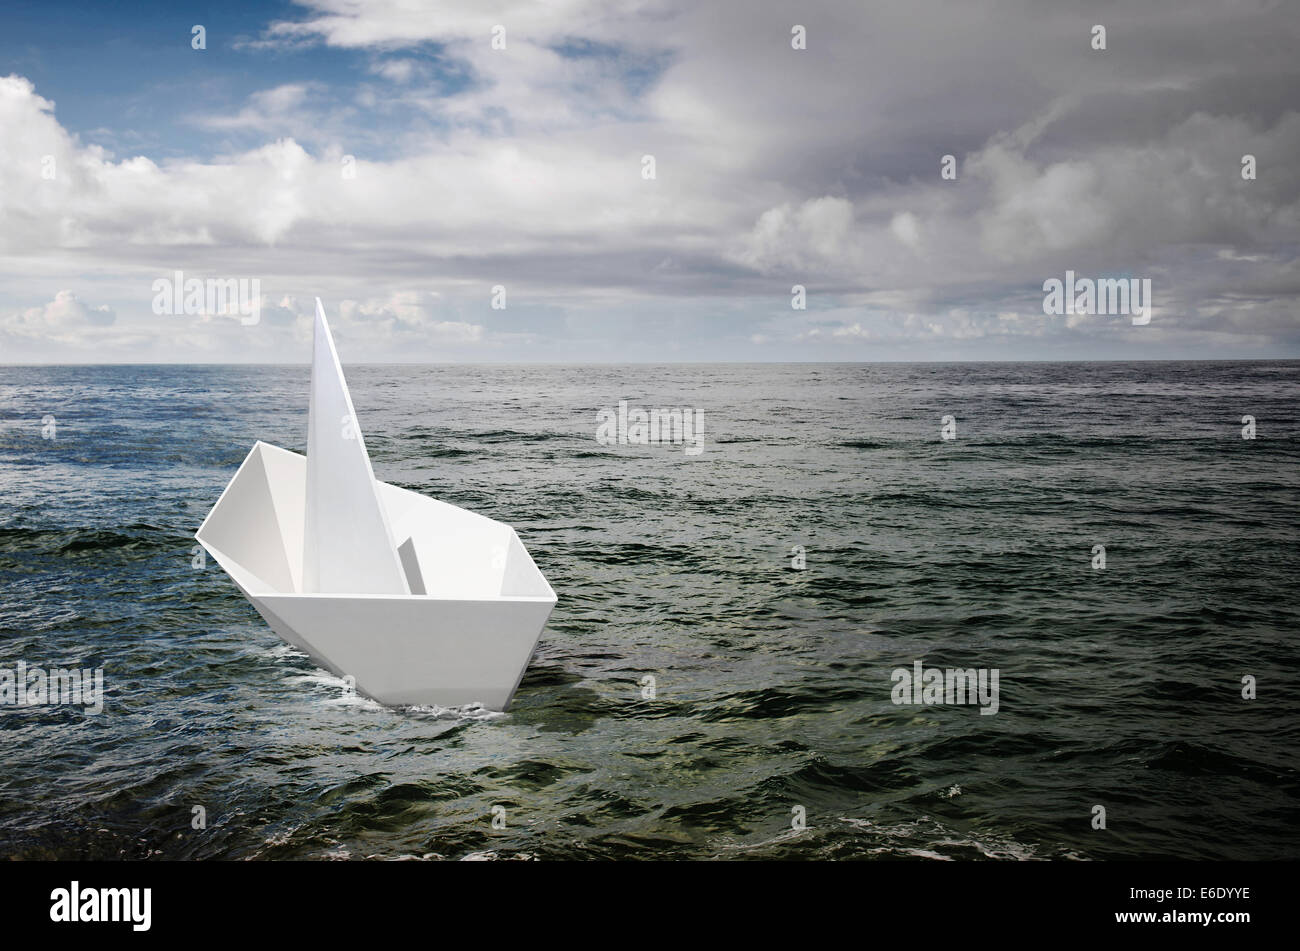 Single White Paper Boat Adrift In The Ocean Under A Stormy Sky